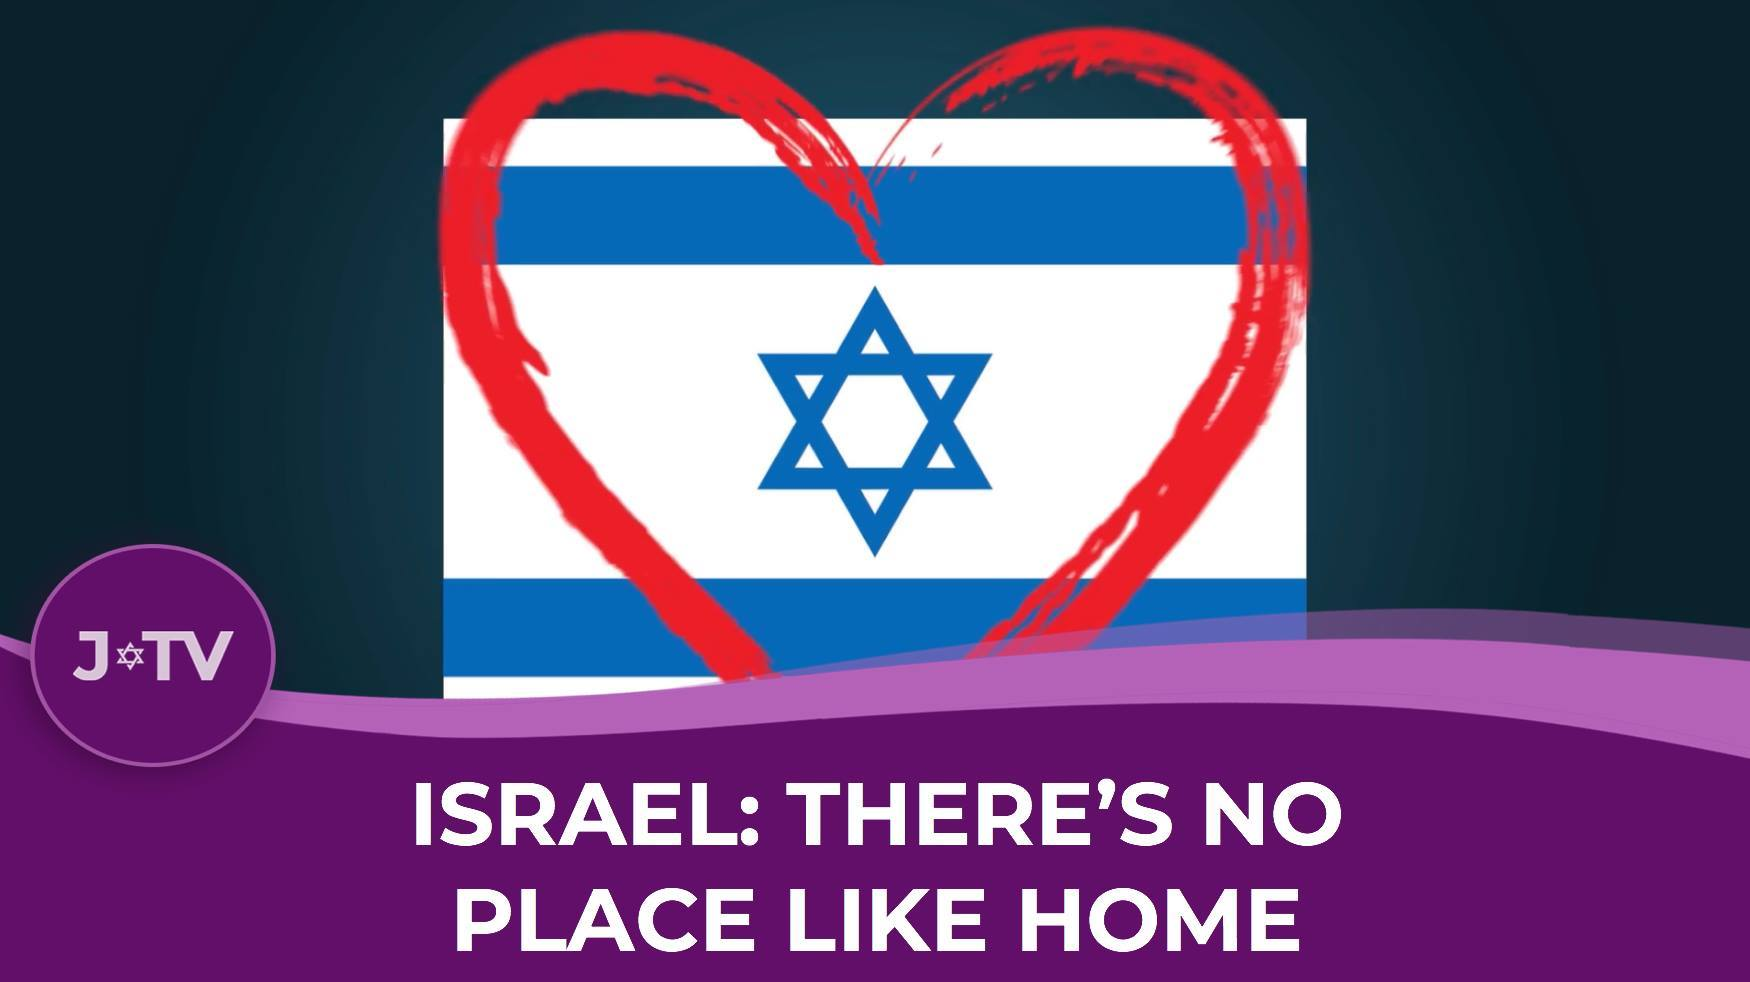 Israel: There's No Place Like Home (Facebook)